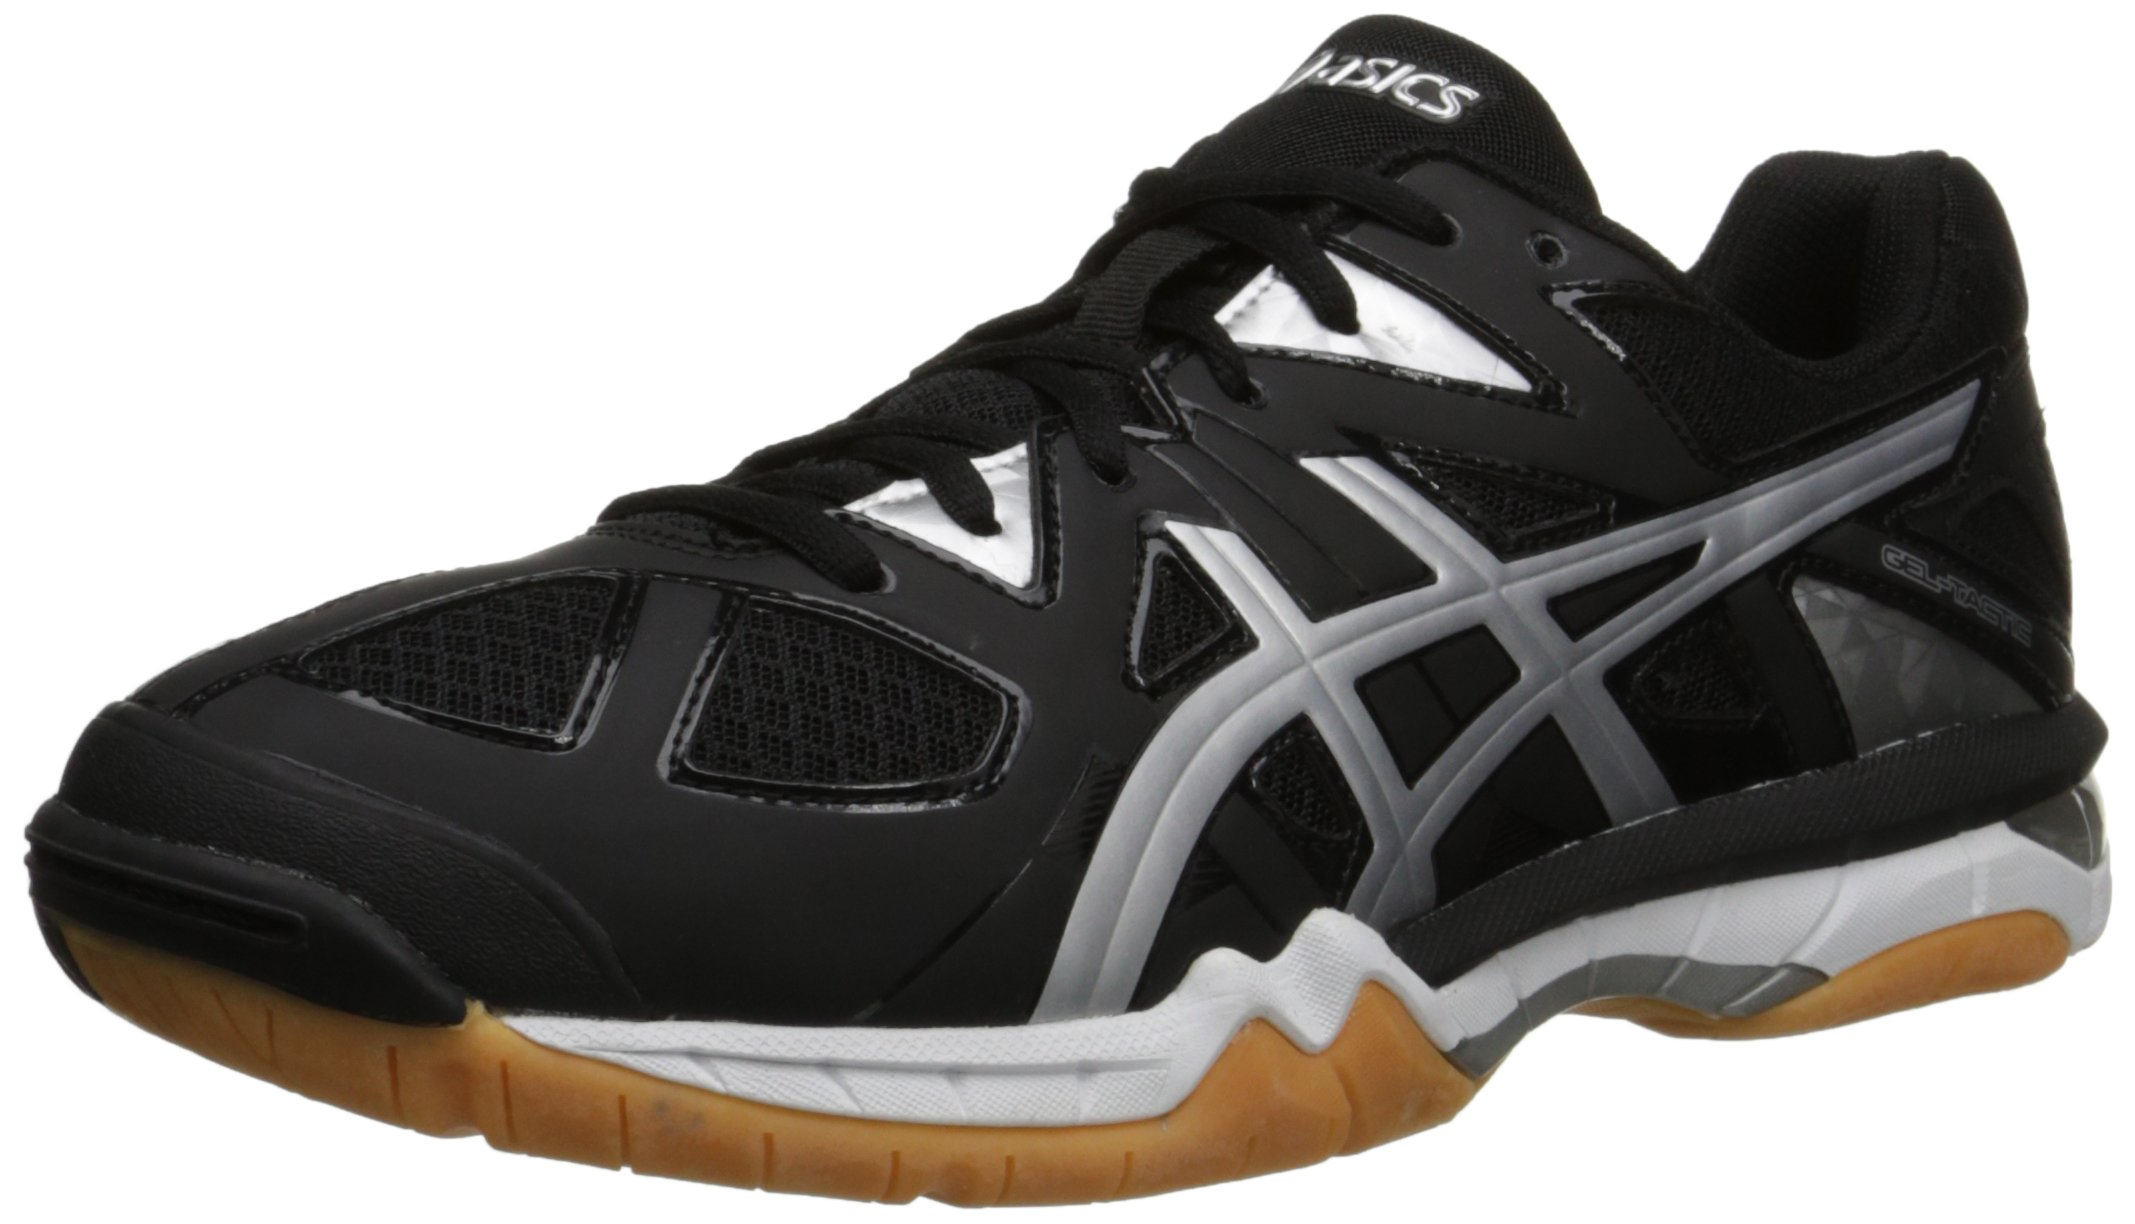 ASICS Men's Gel-Tactic Volleyball Shoe, Black/Onyx/Silver, 6.5 M US